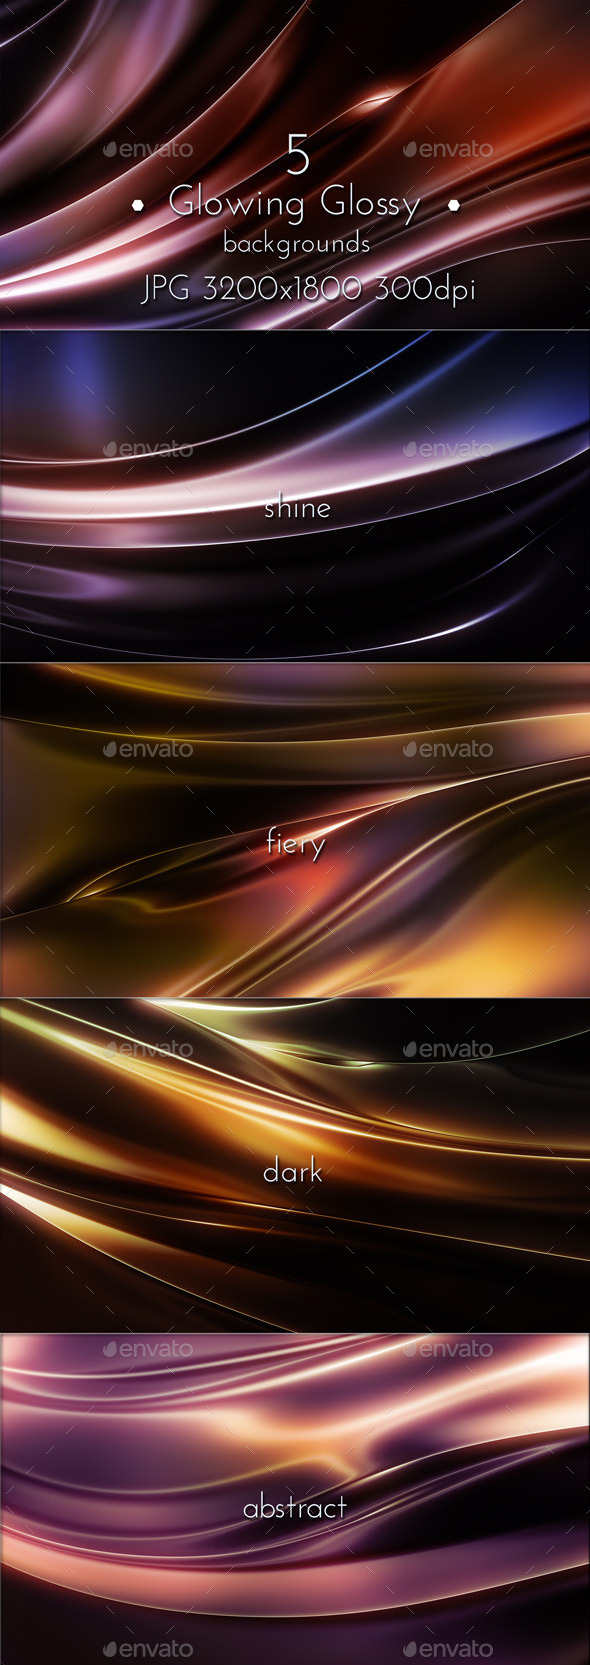 GraphicRiver Glowing Glossy Backgrounds 11068089